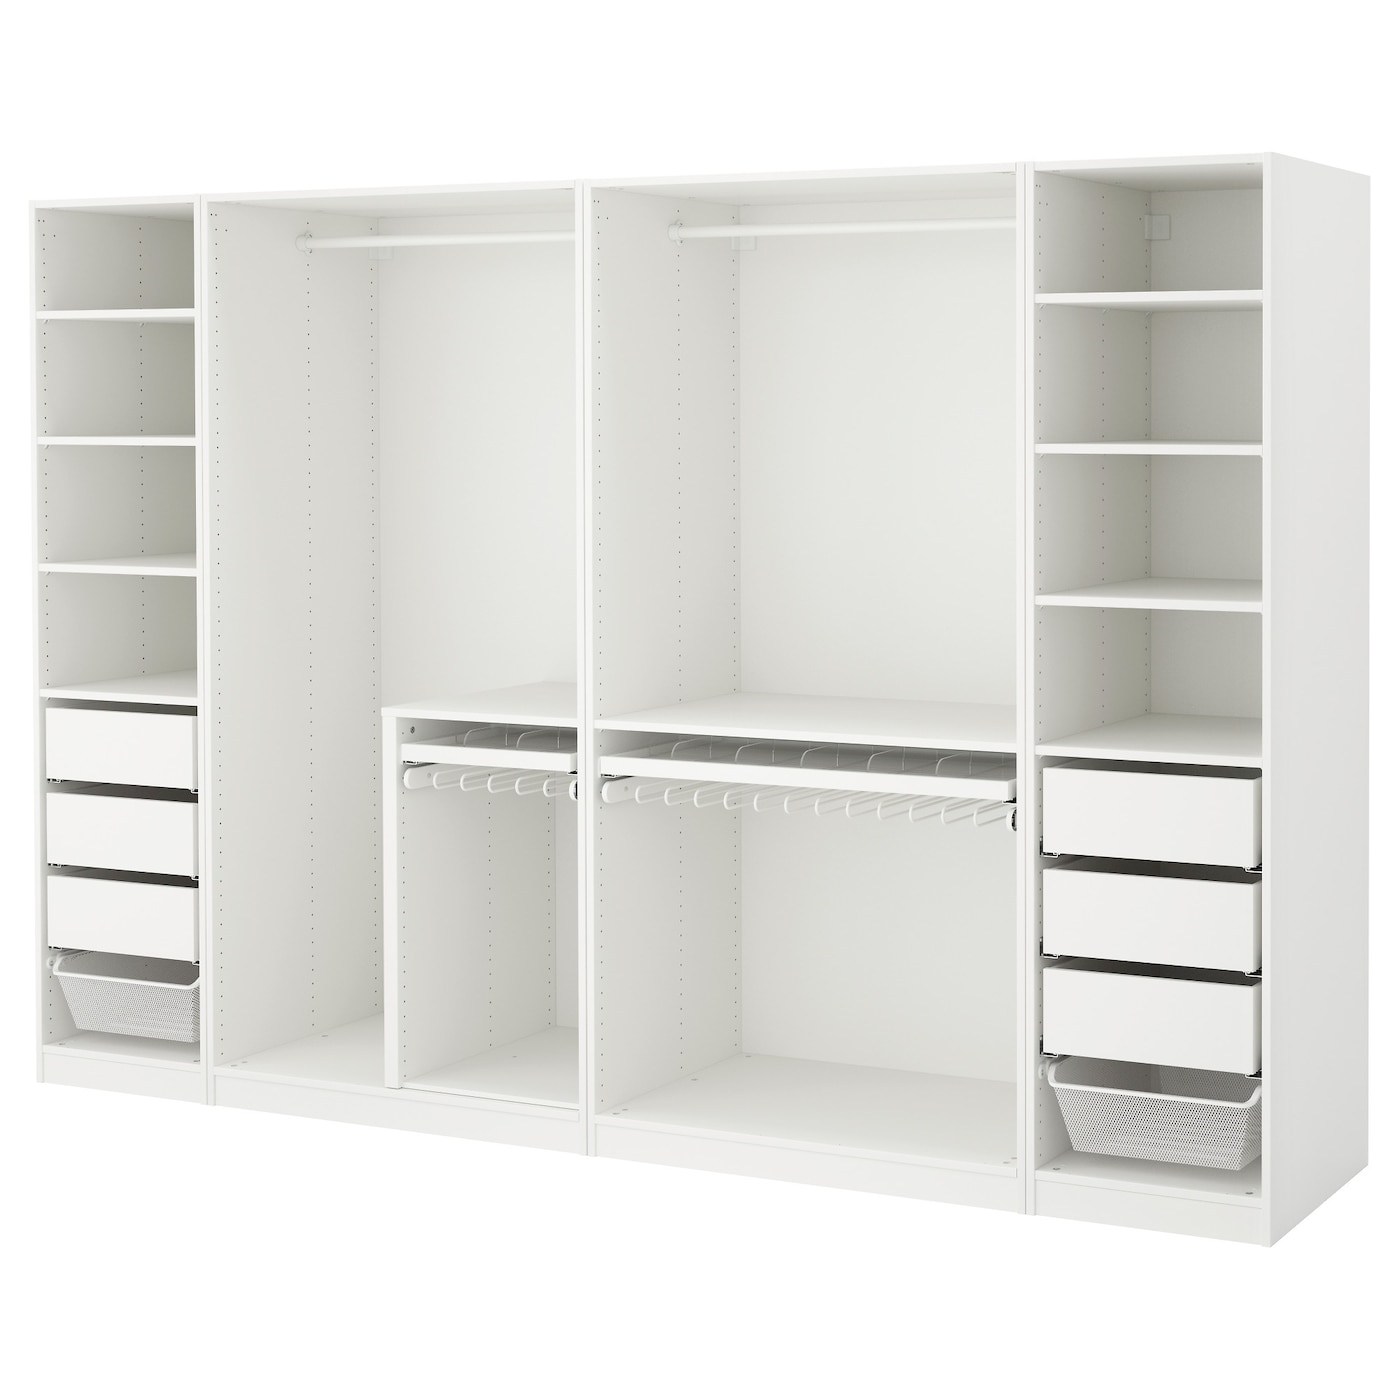 pax wardrobe white 300x58x201 cm ikea. Black Bedroom Furniture Sets. Home Design Ideas